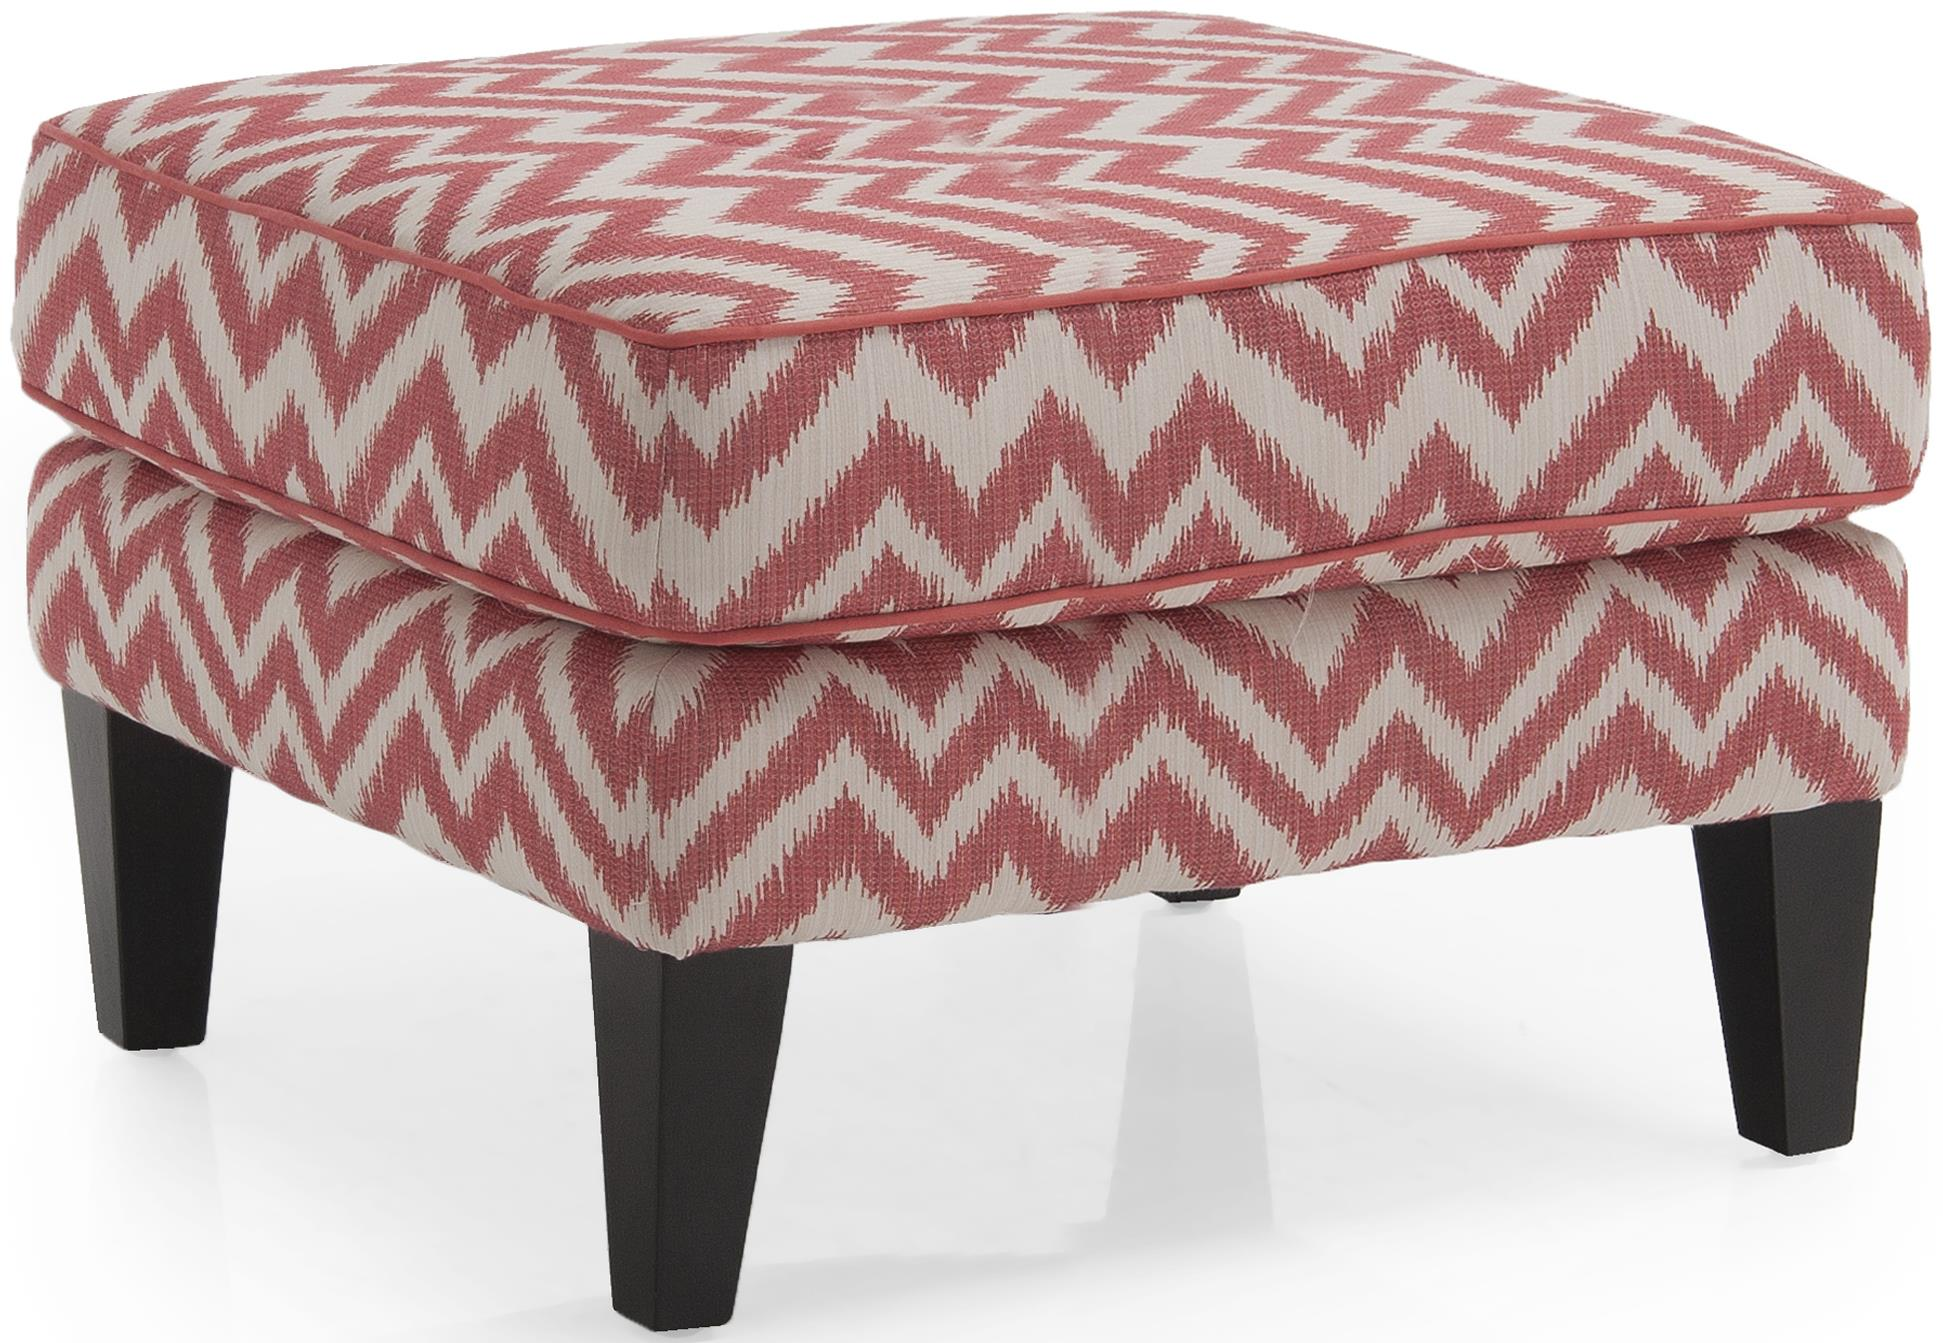 2468 Ottoman by Decor-Rest at Upper Room Home Furnishings